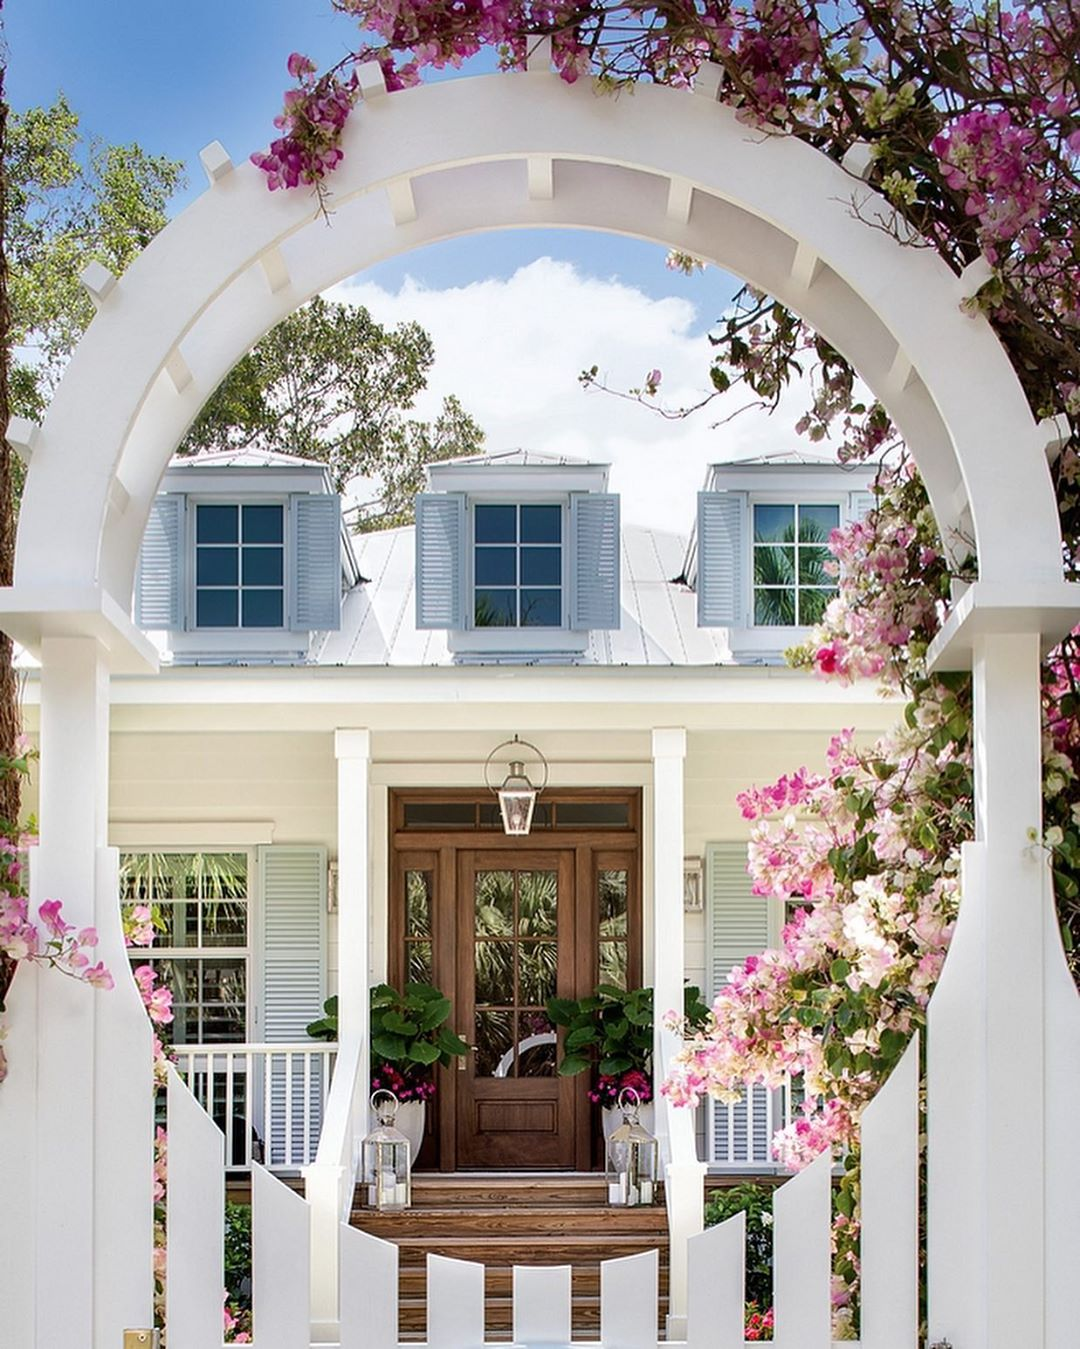 Breathtaking lovely curb appeal with amaazing floral covered arbor and blue shutters - Pineapples Design Group. Peek at Charming Porch Inspiration & Decor Ideas for your home! #whitehouses #housedesign #exteriors #curbappeal #shutters #arbor